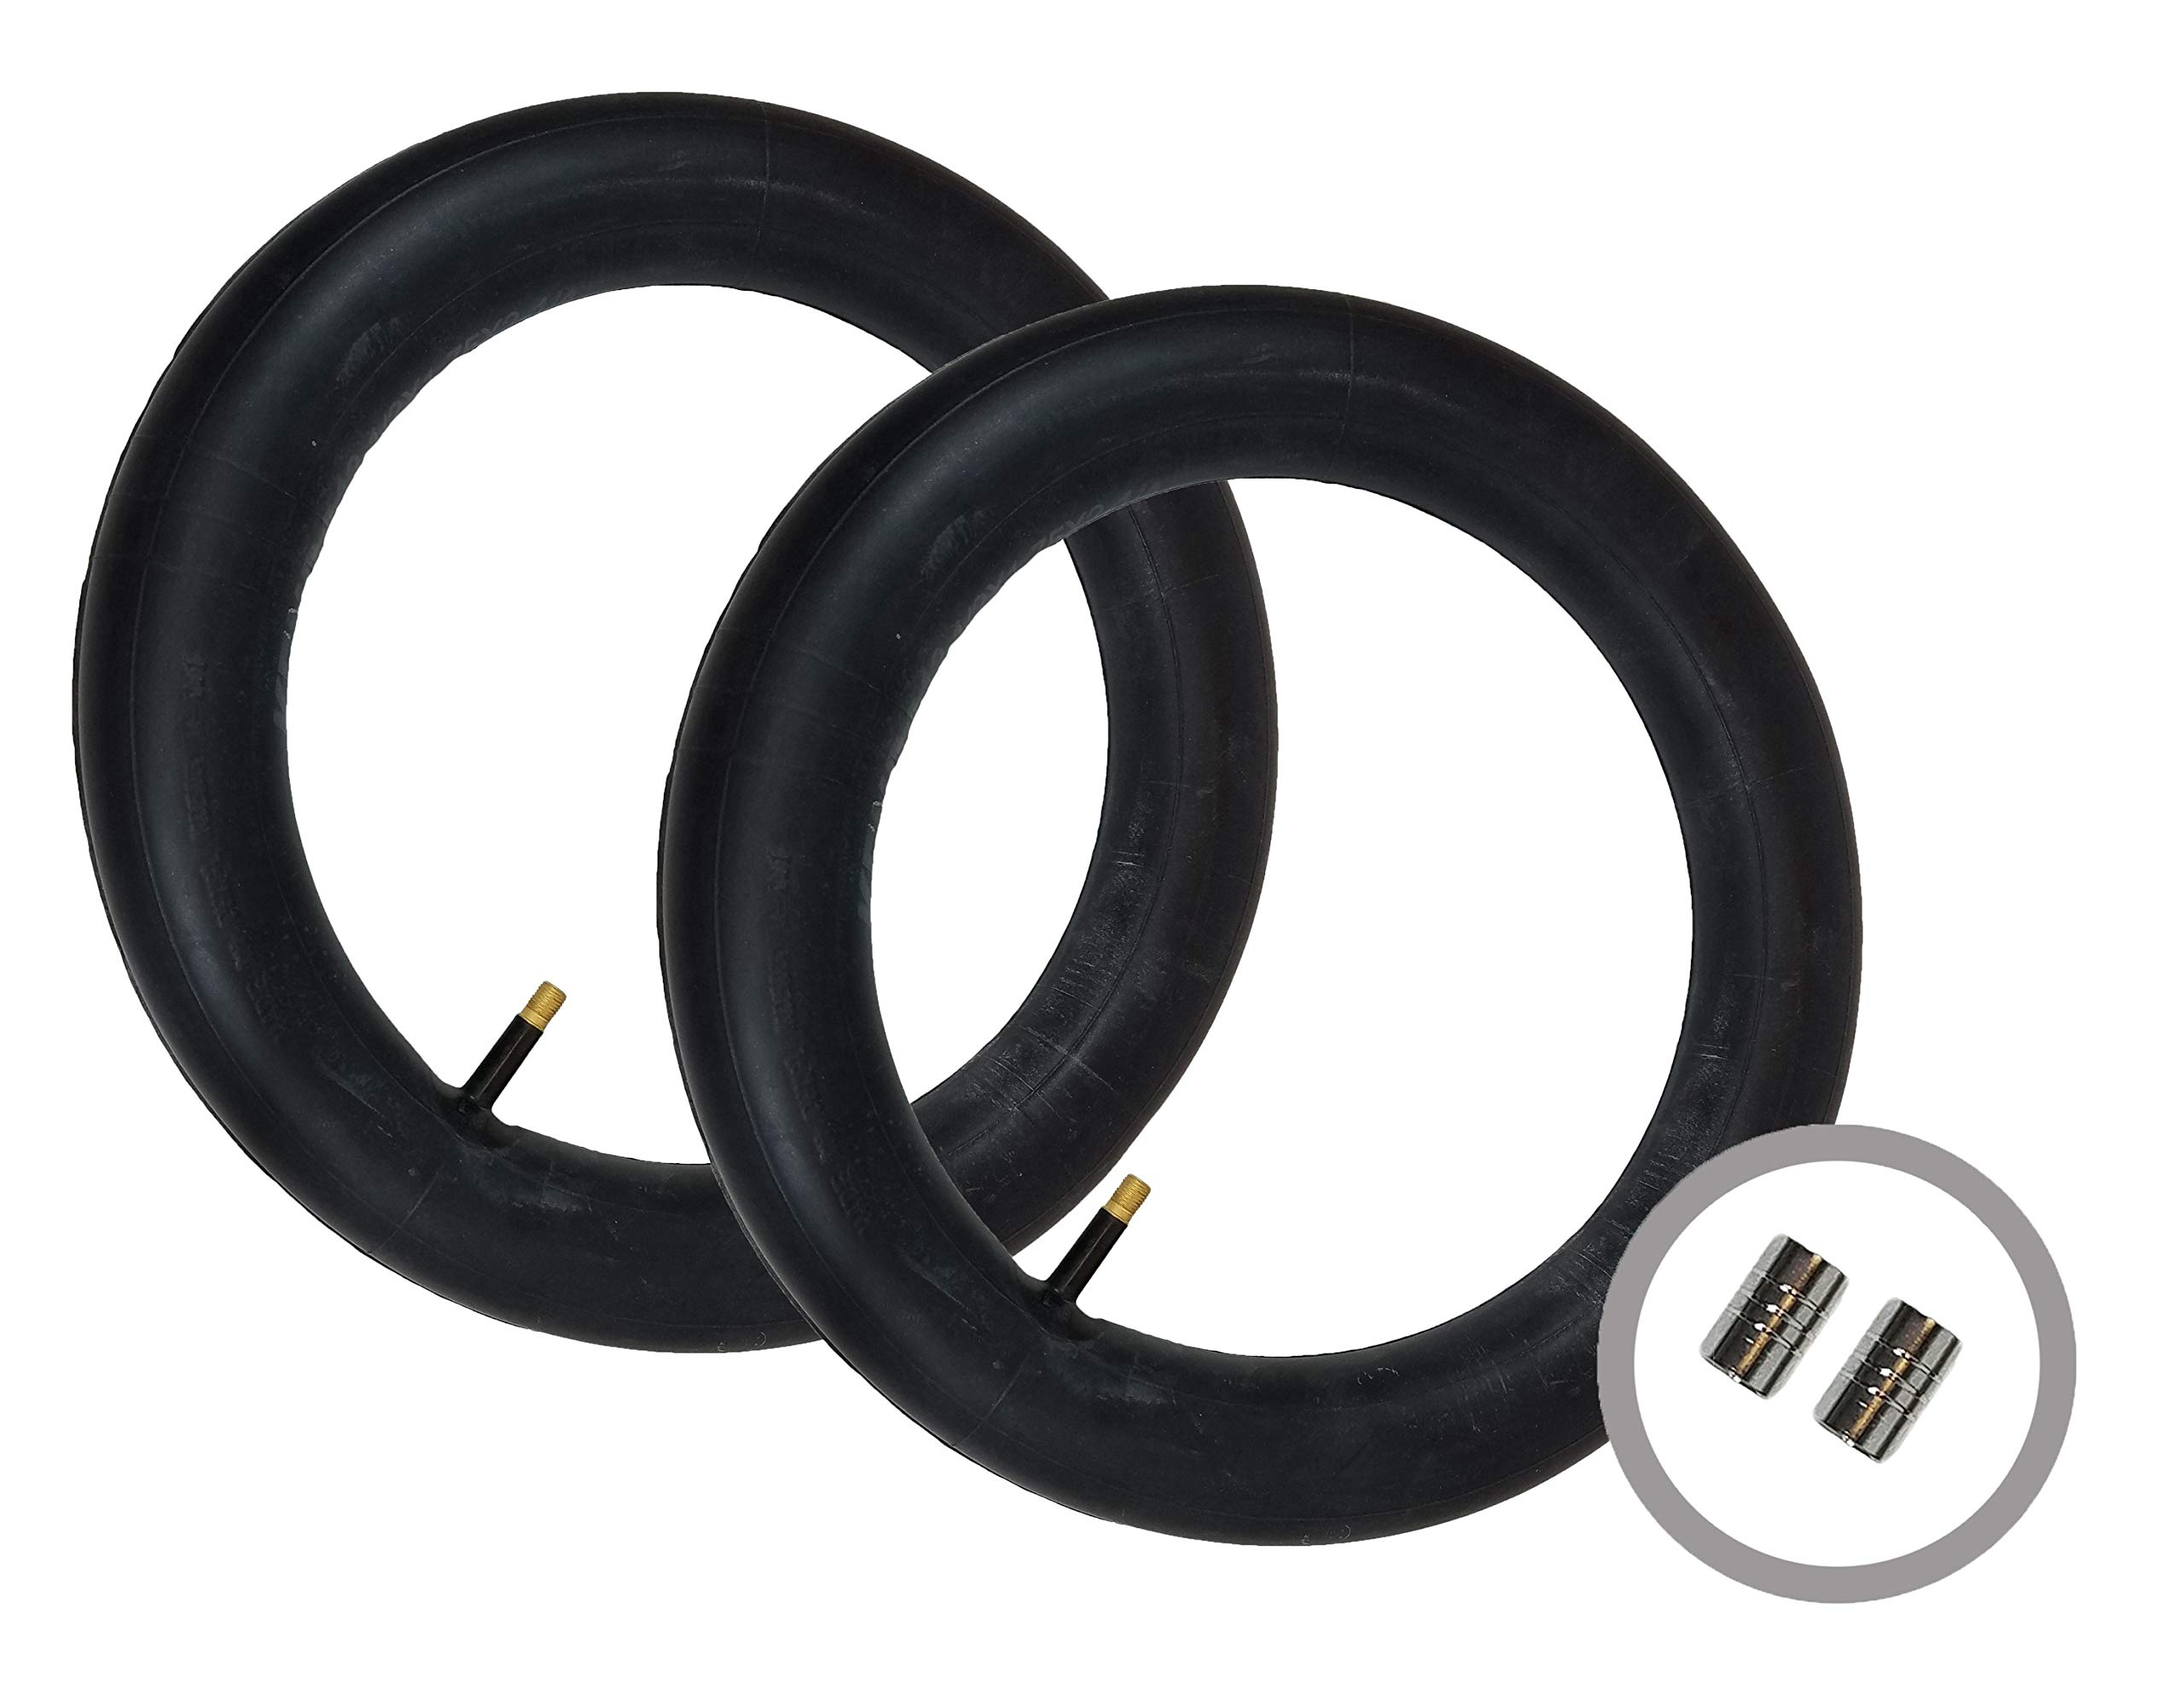 2 x Bob Revolution Se Duallie Stroller/Pushchair - Rear Inner Tubes 16'' - Straight/Auto Valve with Metal Valve Caps by BOB (Image #1)